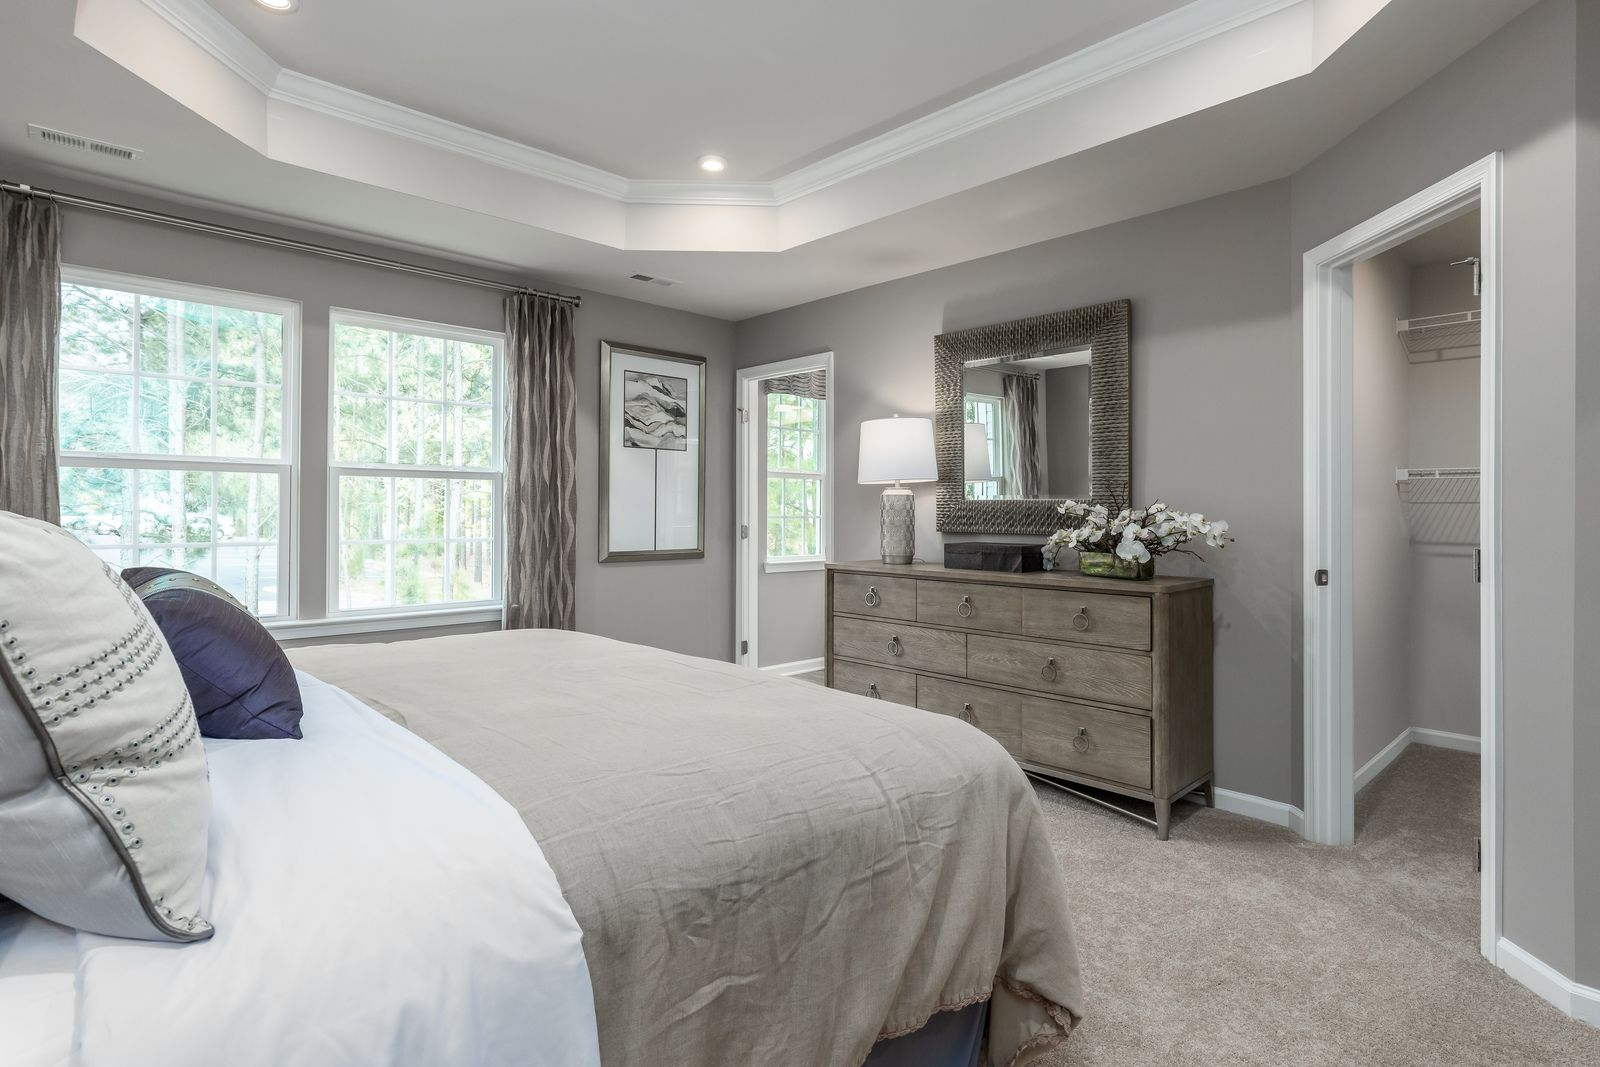 Bedroom featured in the Mozart By Ryan Homes in Pittsburgh, PA